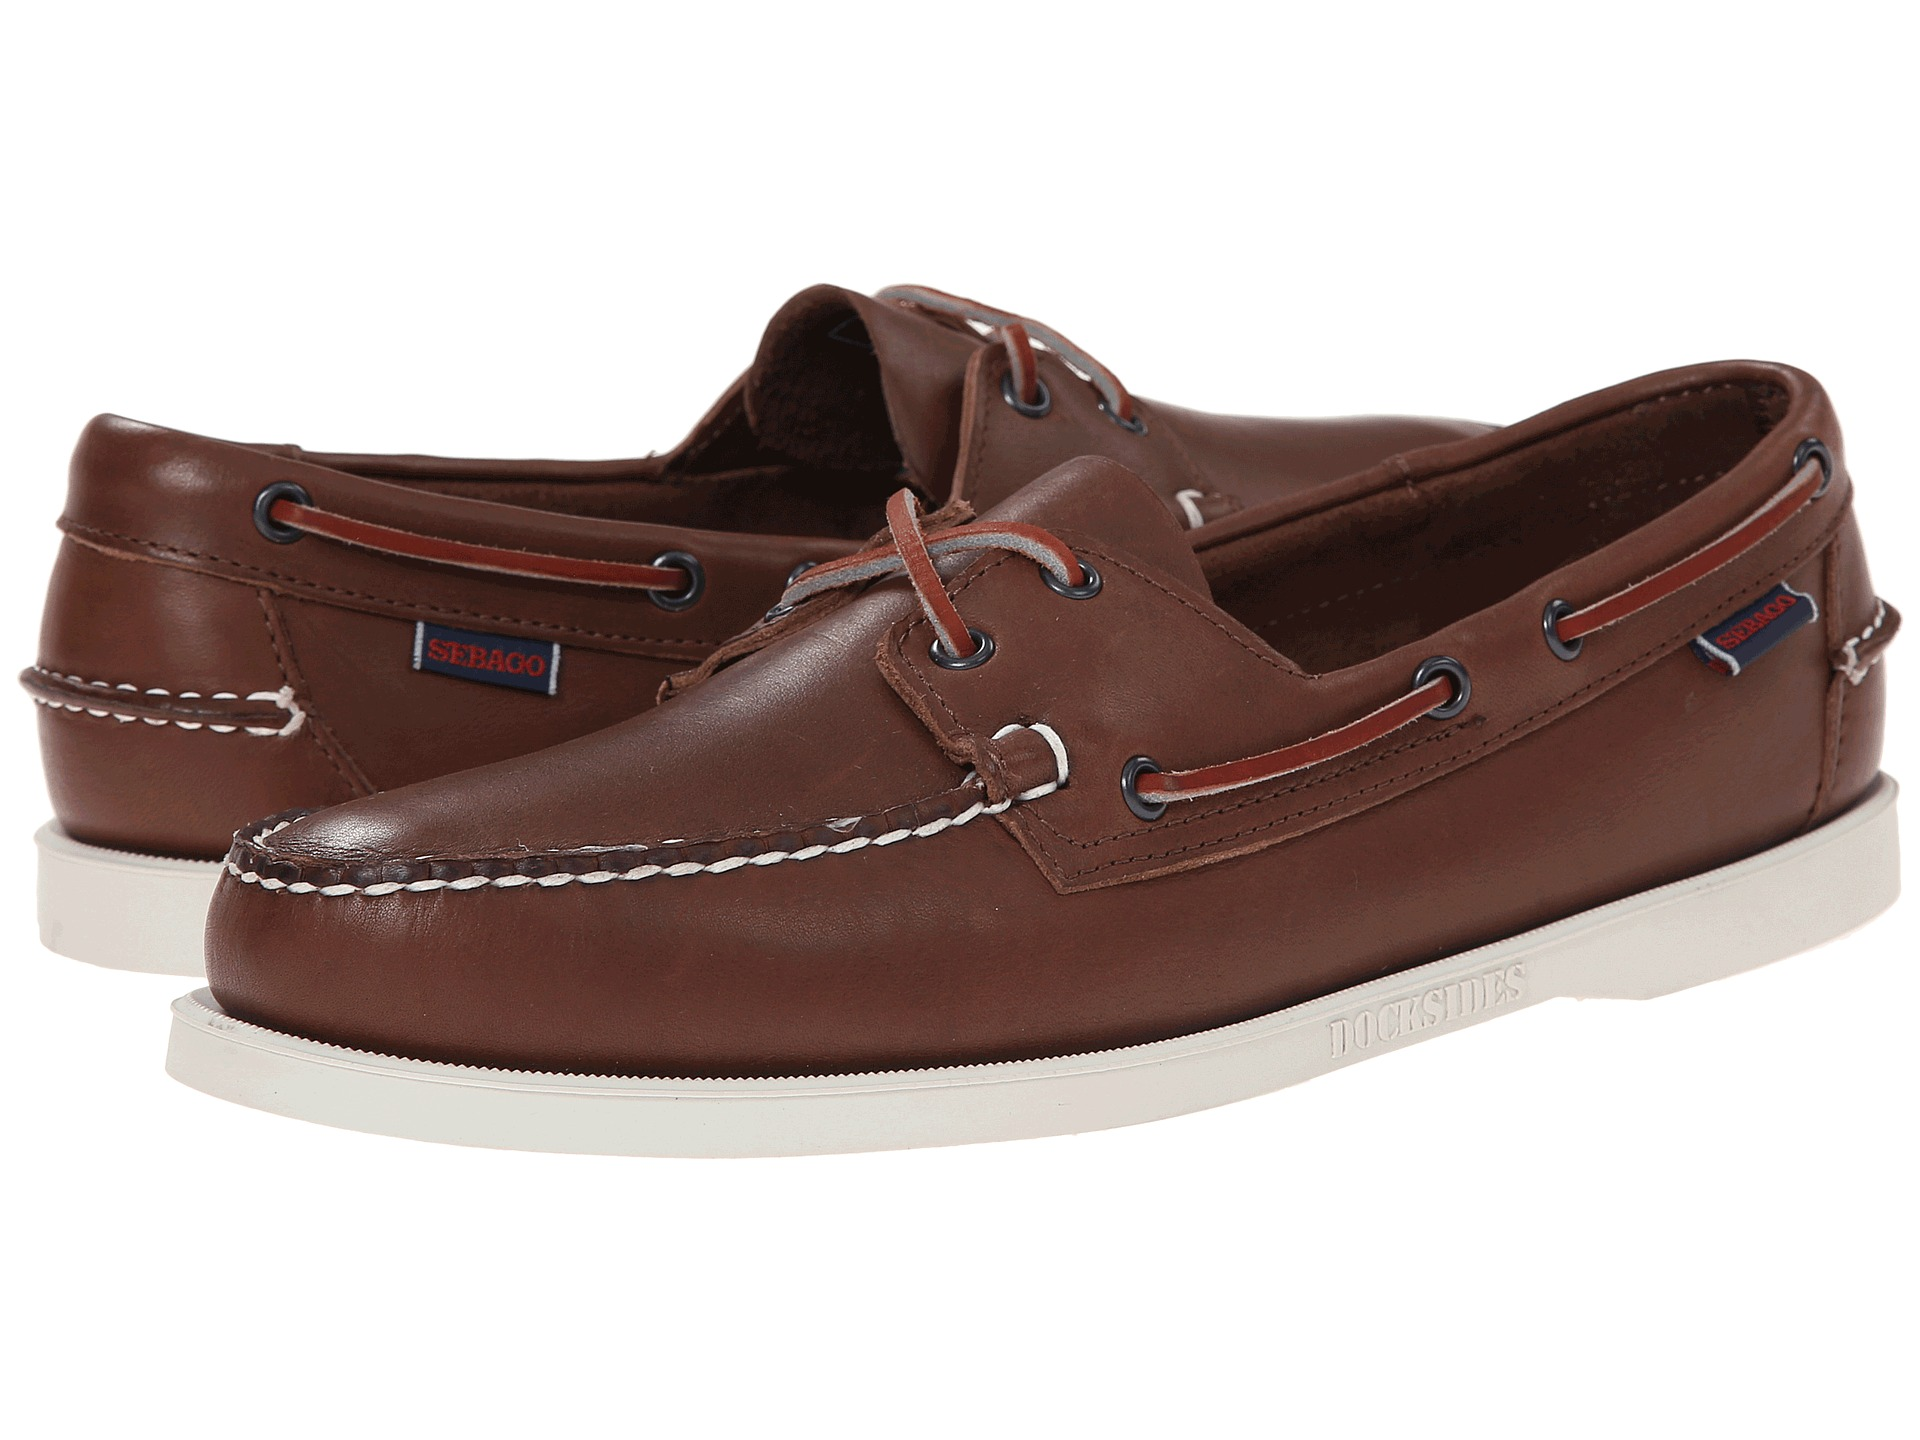 single men in sebago ★ sebago 'schooner' boat shoe  if you're finding yourself having to do that with potential partners, the answer isn't to blame men and discontinue dating.